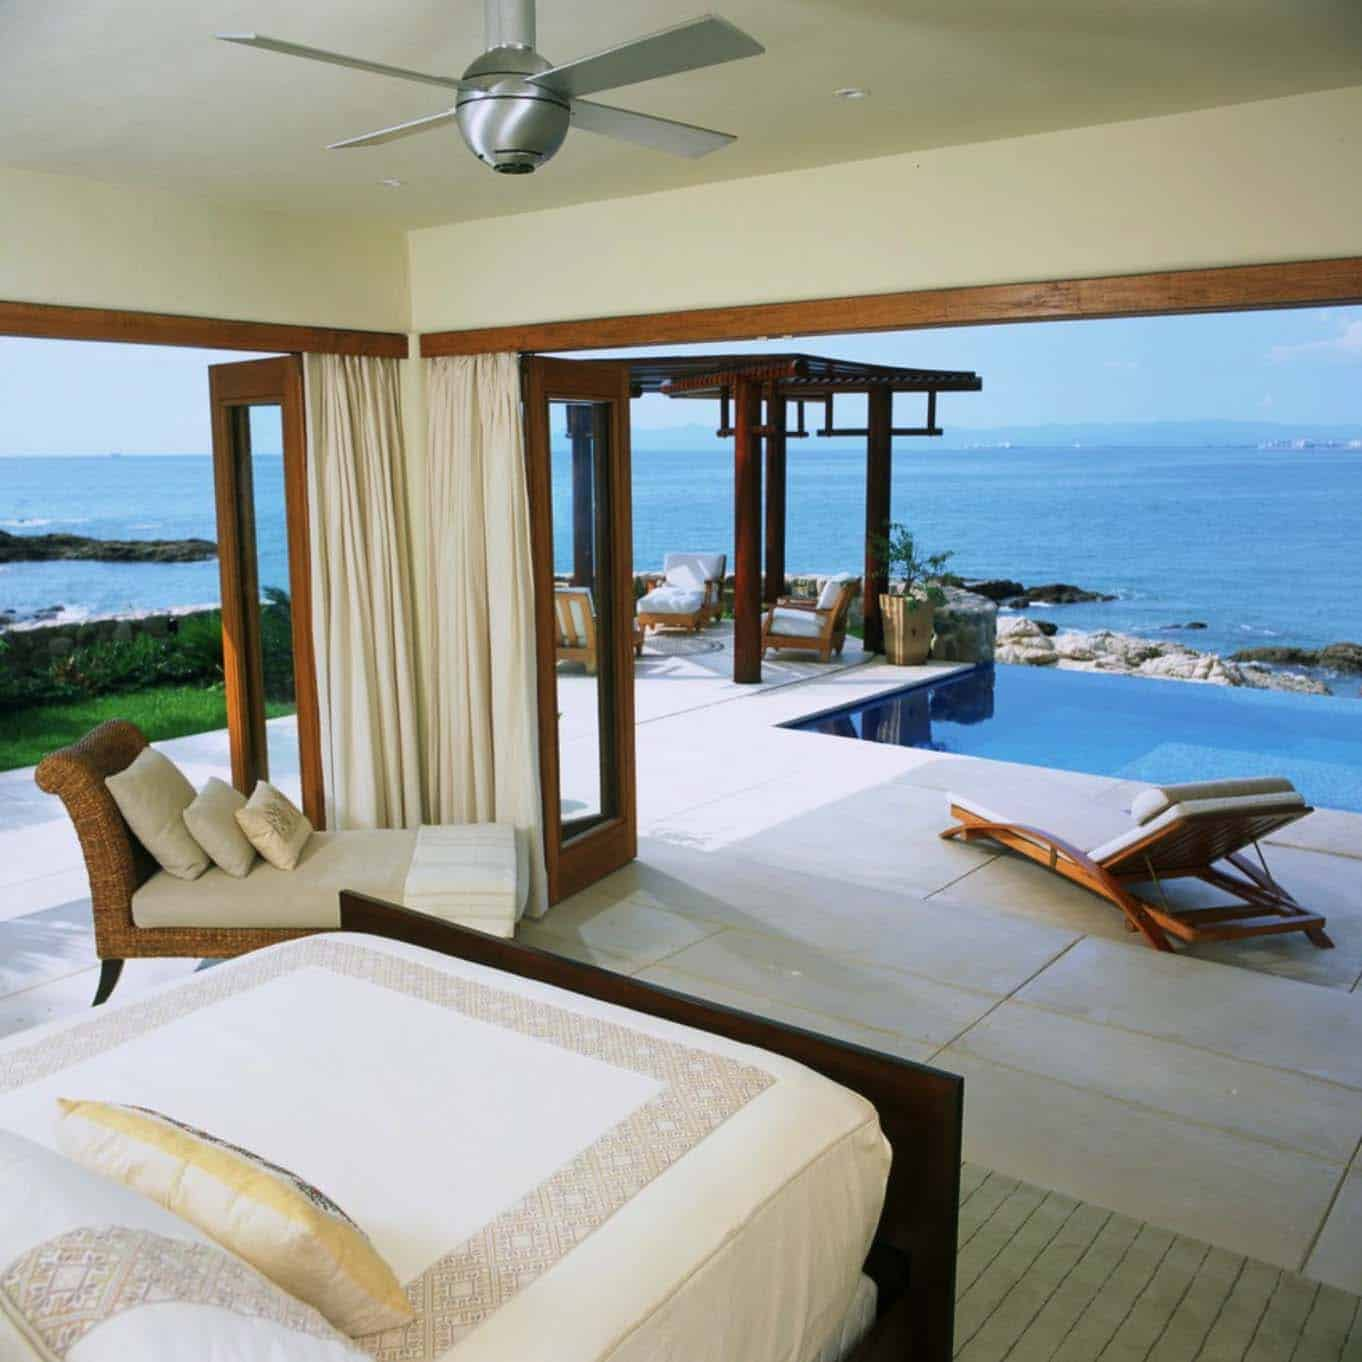 33 sun drenched bedrooms with mesmerizing ocean views - Connection between lifestyle home design ...